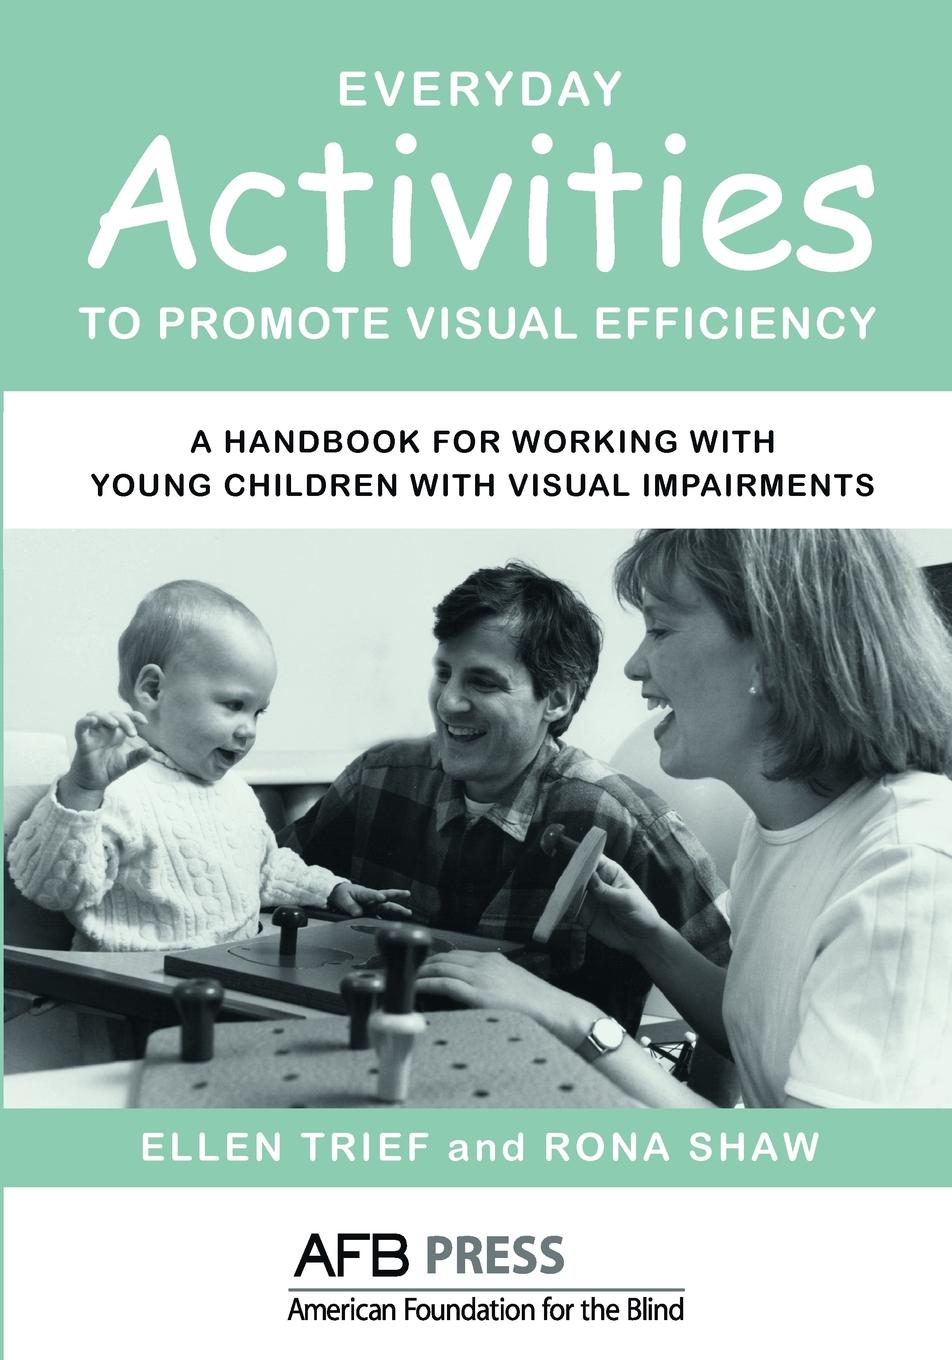 Ellen Trief, Rona Shaw Everyday Activities to Promote Visual Efficiency. A Handbook for Working with Young Children Impairments